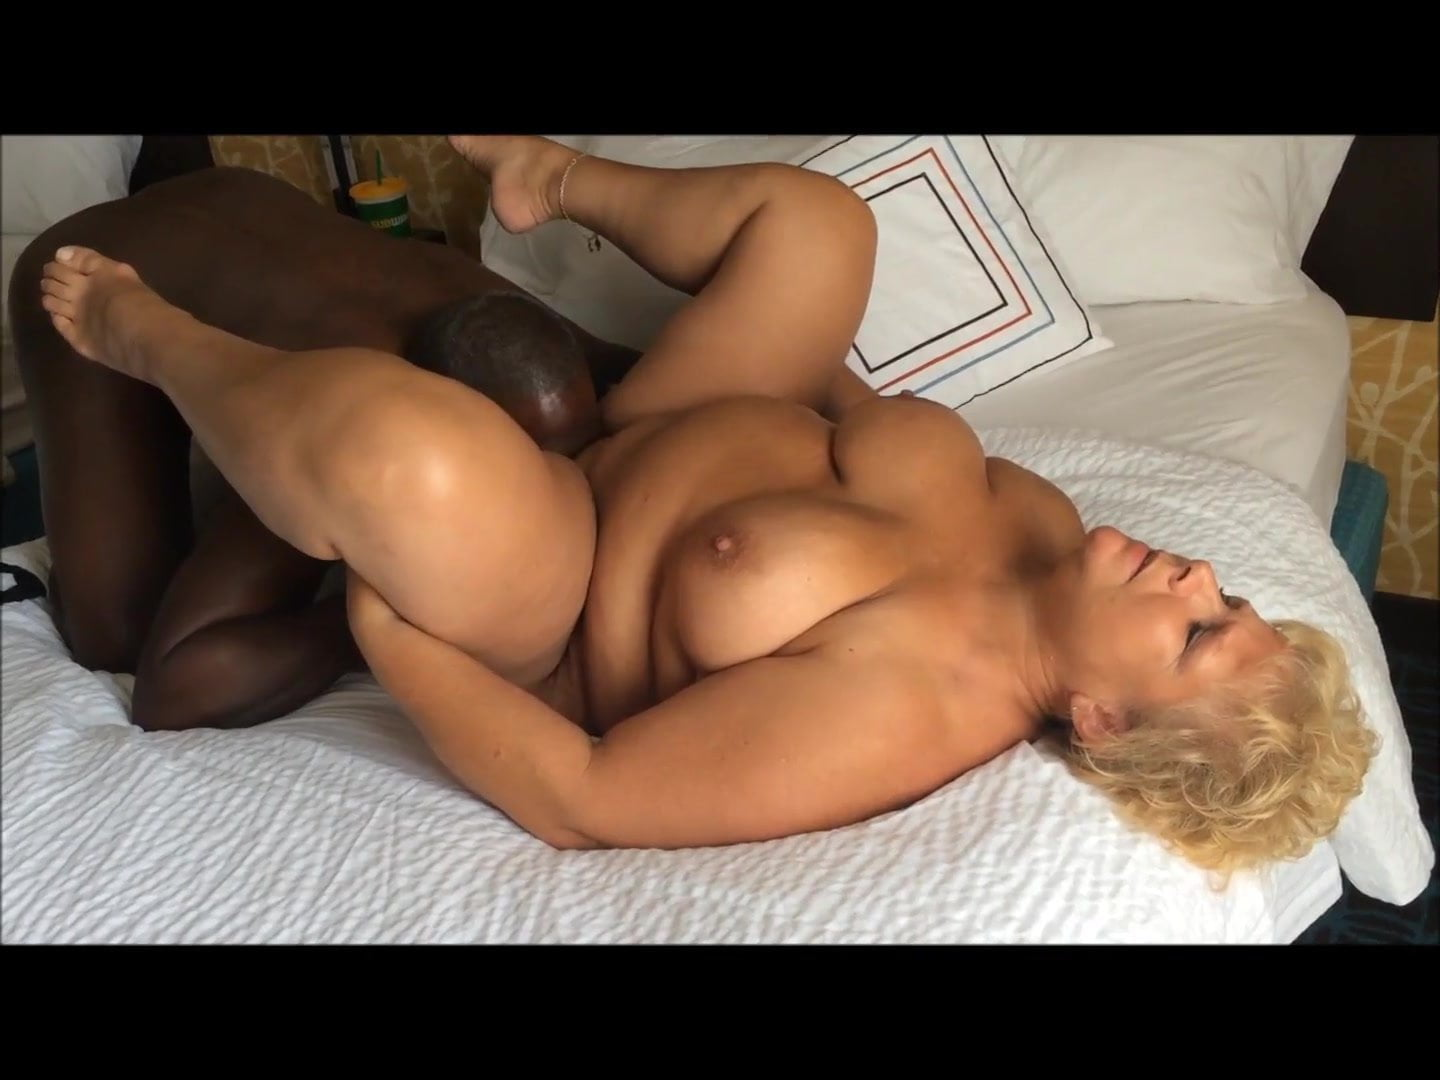 Sharing my wife video